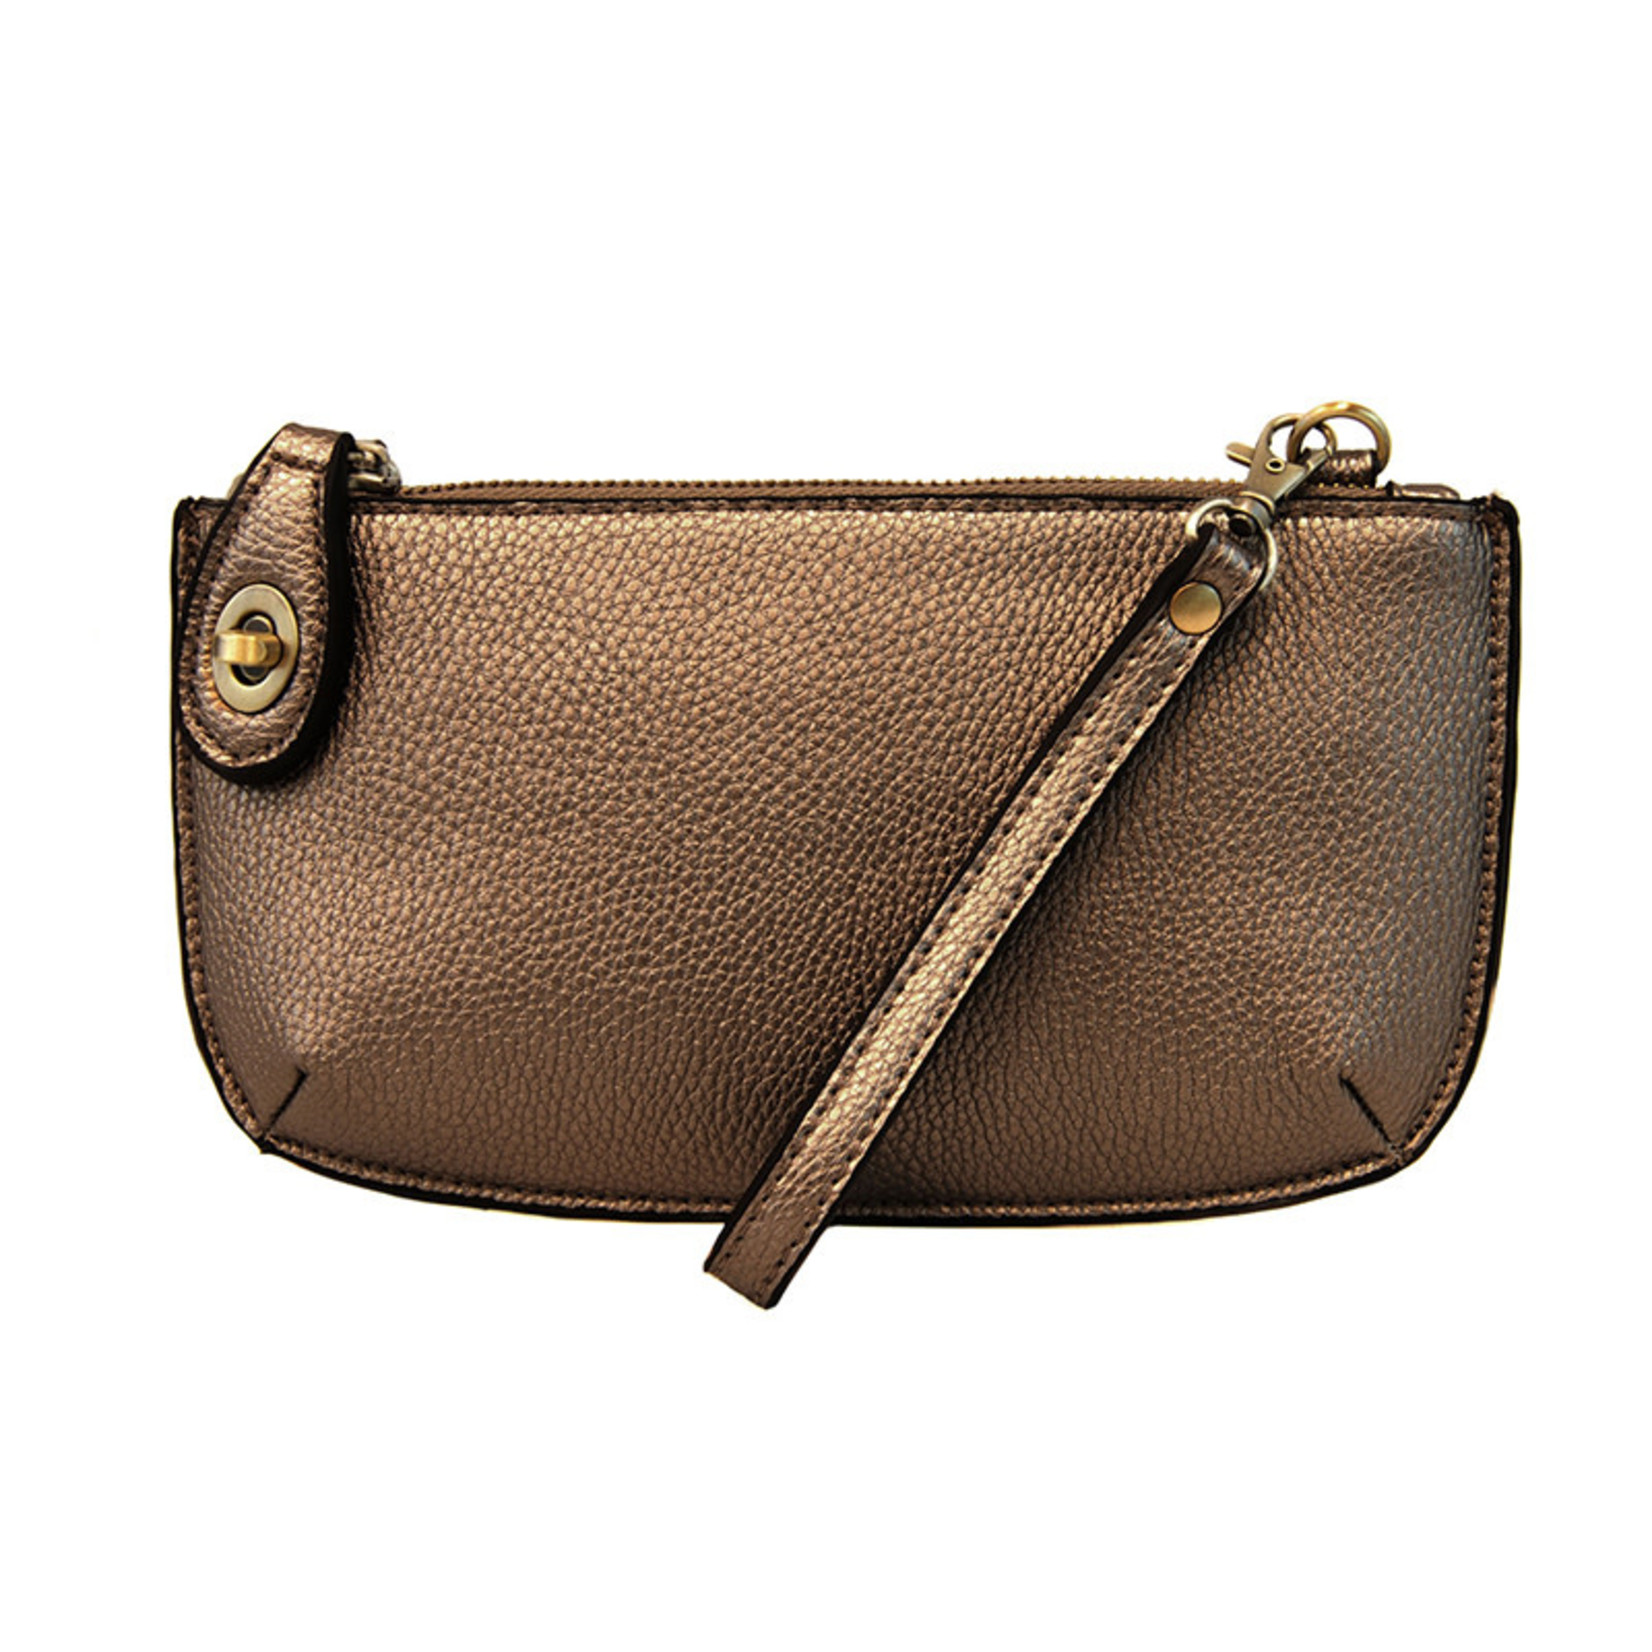 Joy Susan Metallic Bronze Mini Crossbody